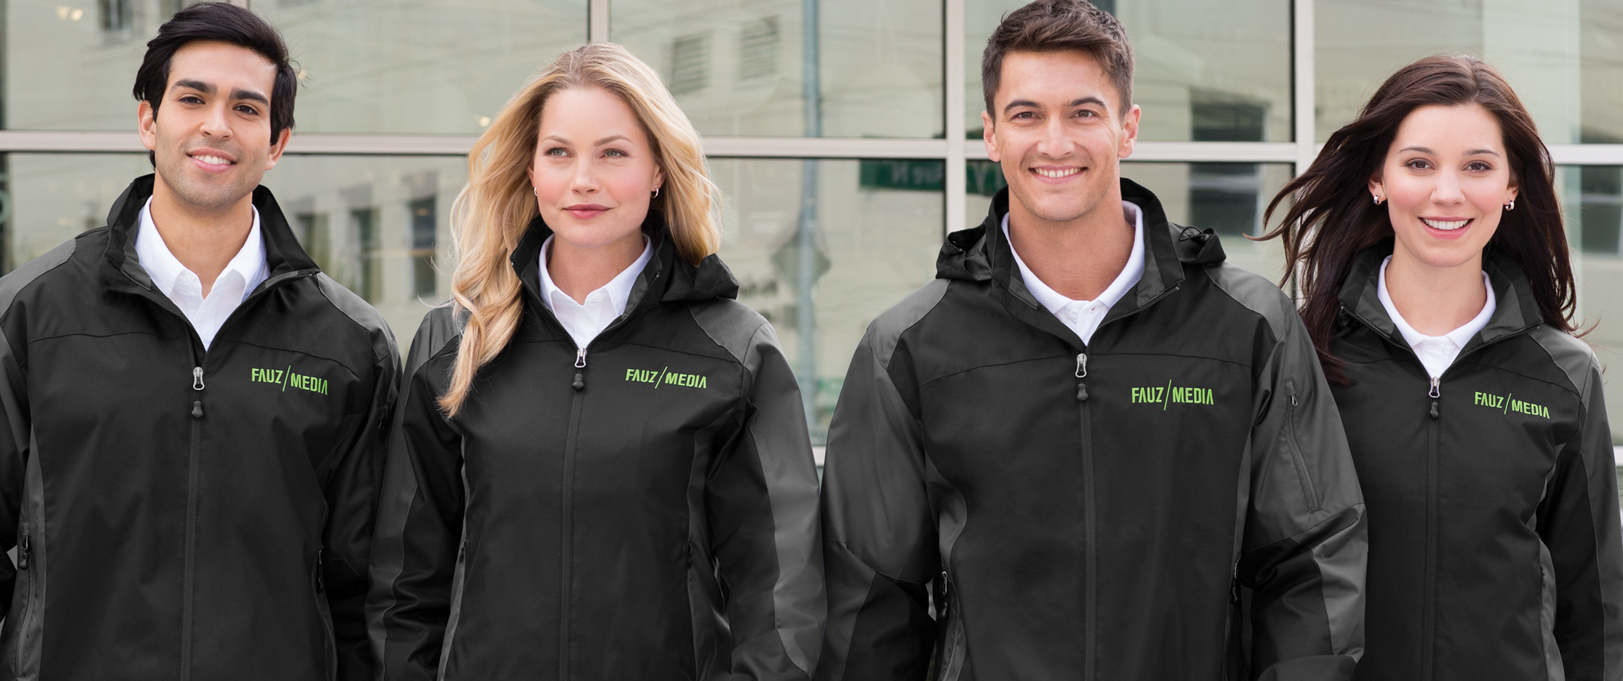 Design custom jackets for your organization, featuring your logo!